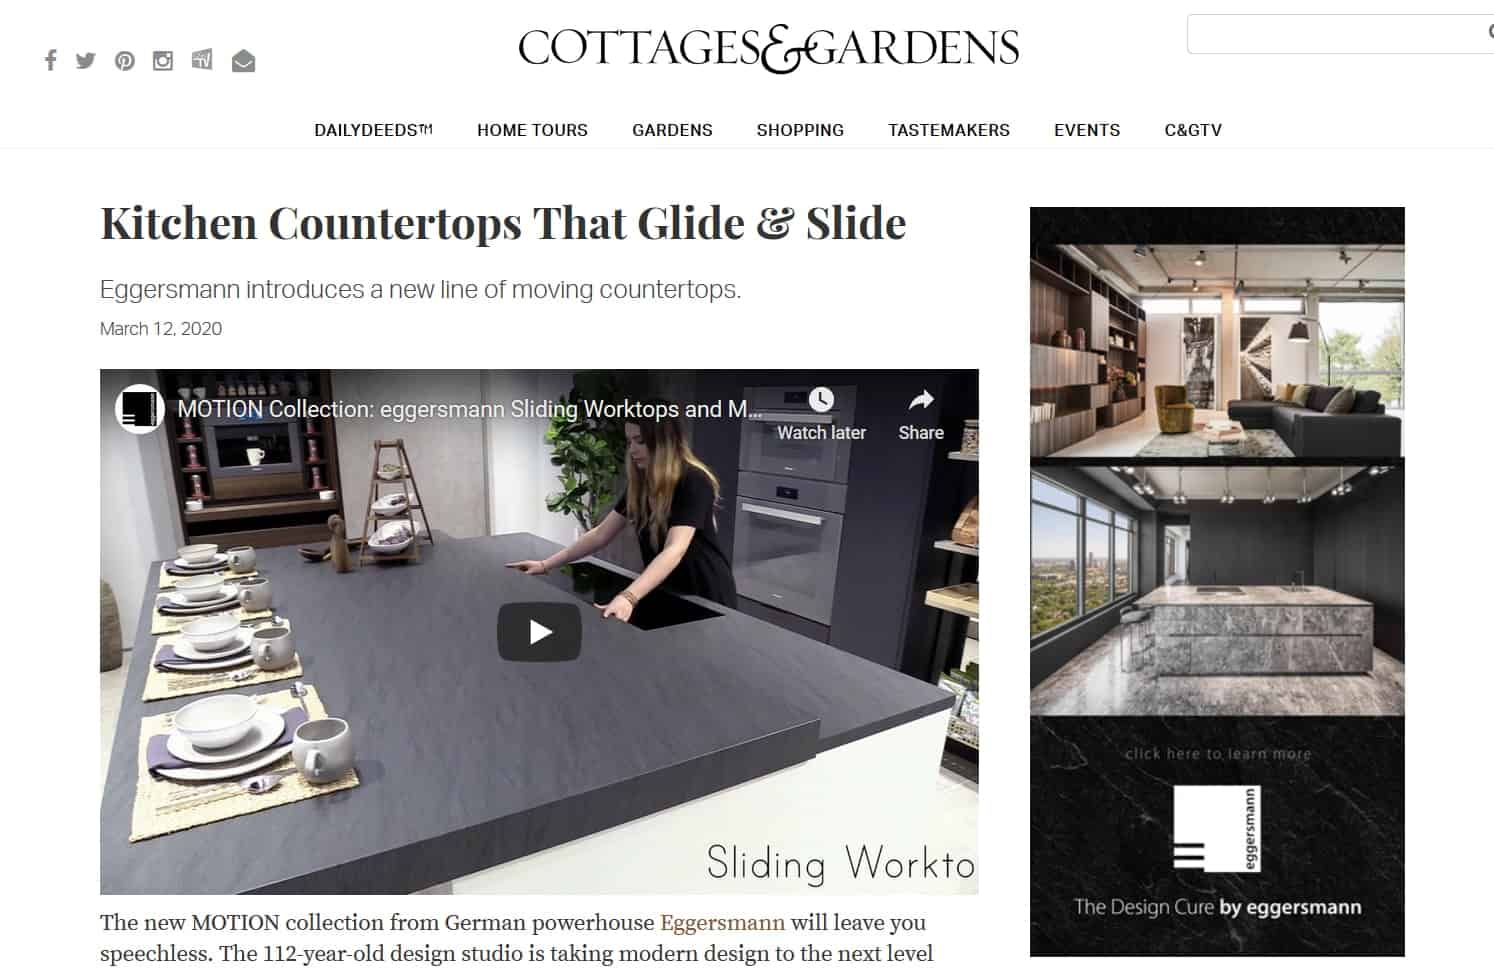 article about eggersmann motion moving countertops in cottage and gardens march edition